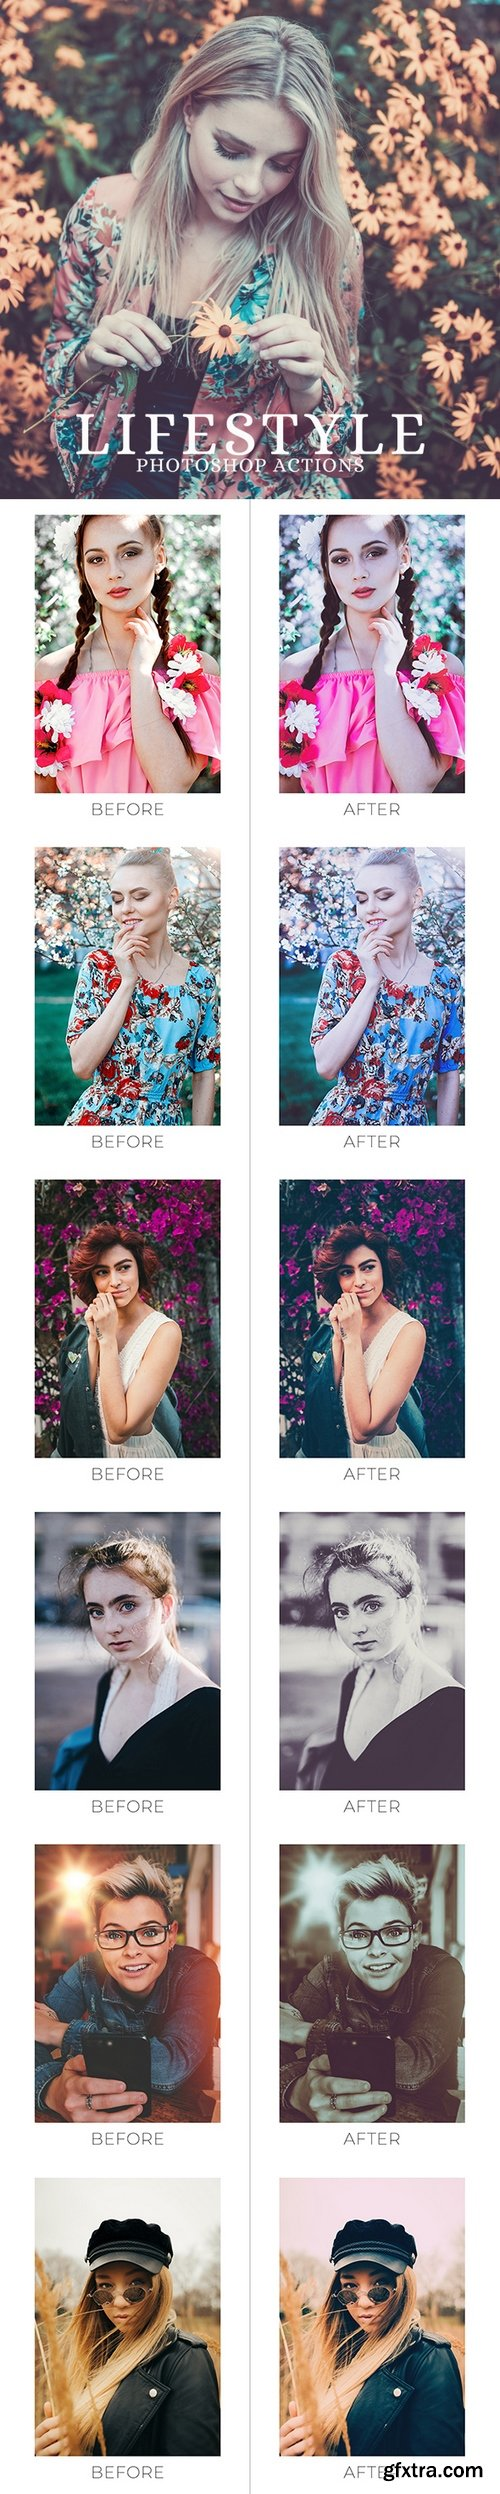 Graphicriver - 25 Lifestyle Photoshop Actions 22086776